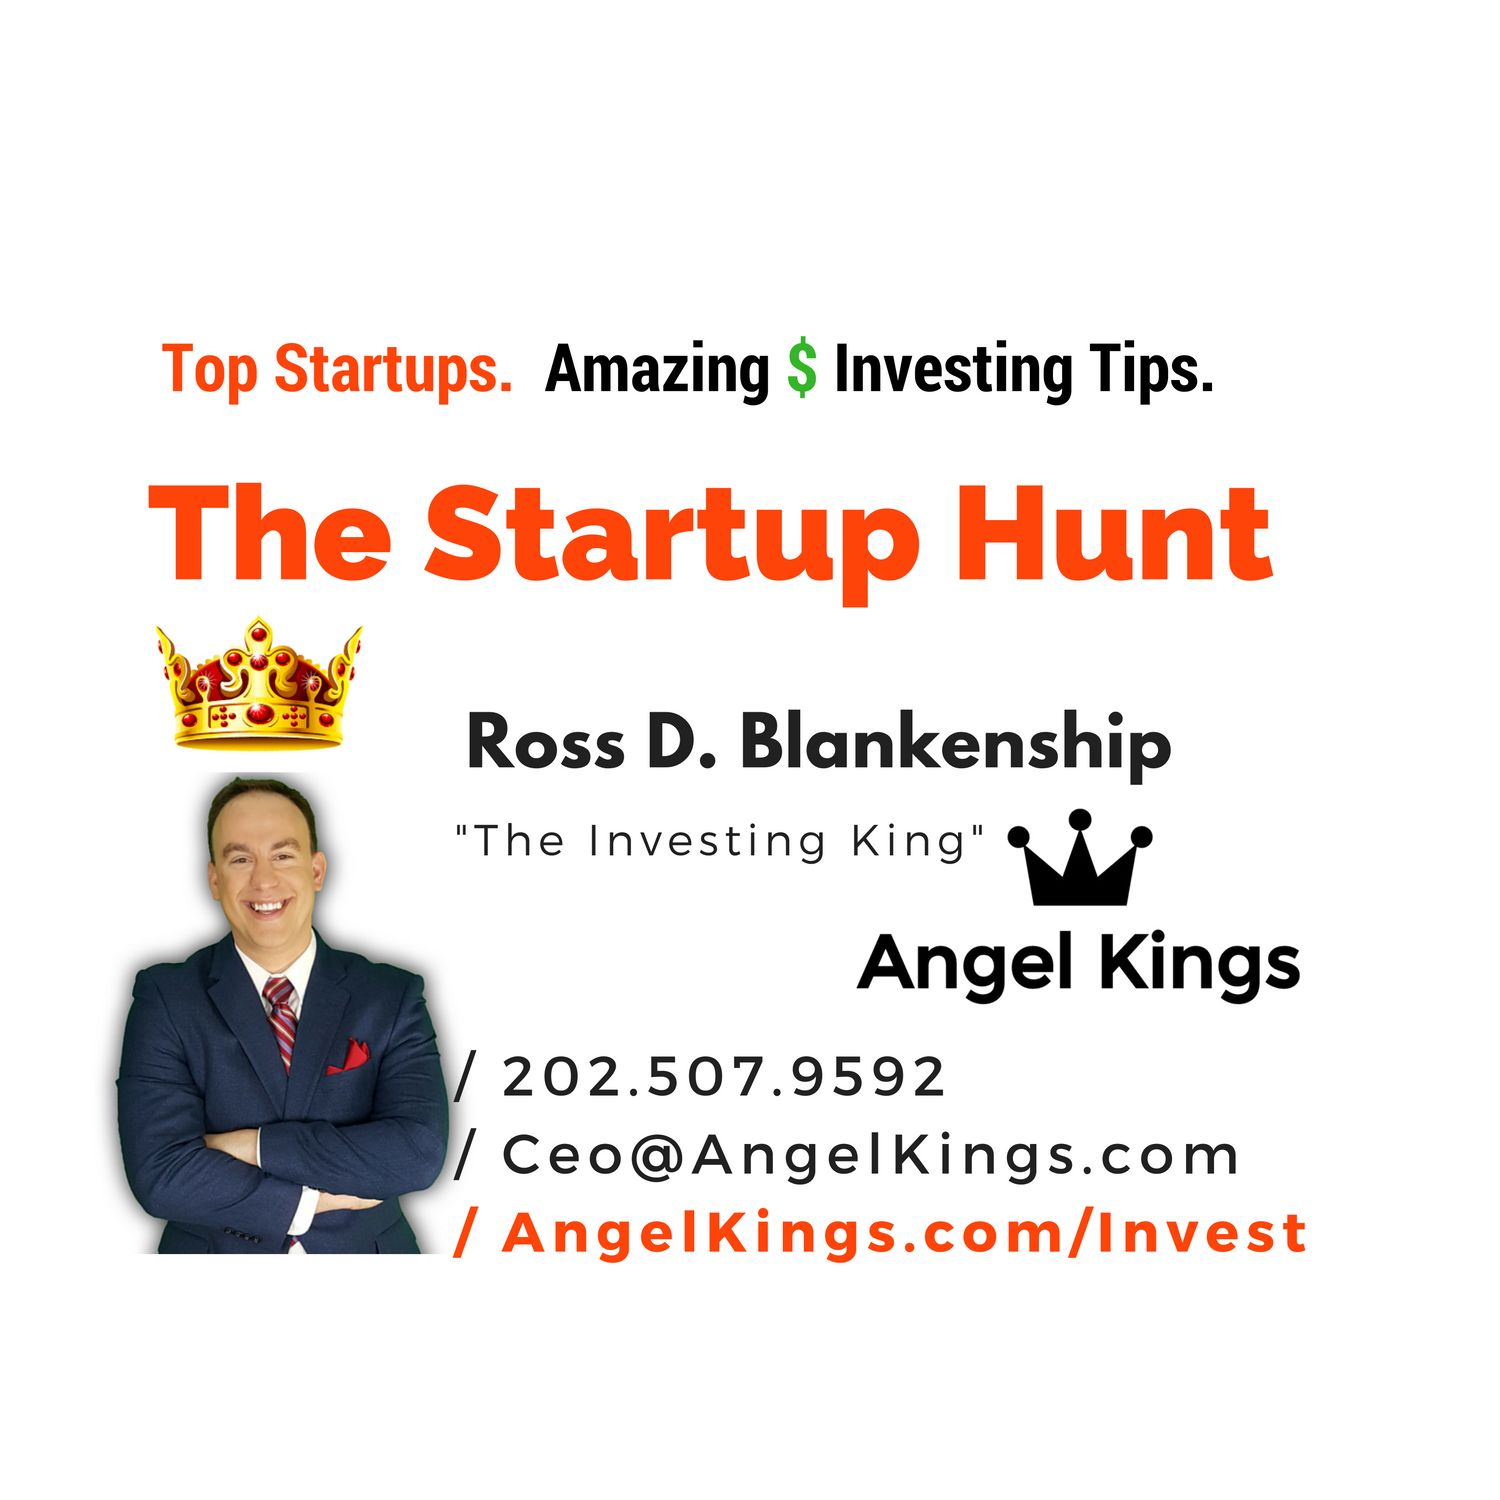 The Startup Hunt - How to Find and Invest in the Next Billion Dollar Startups